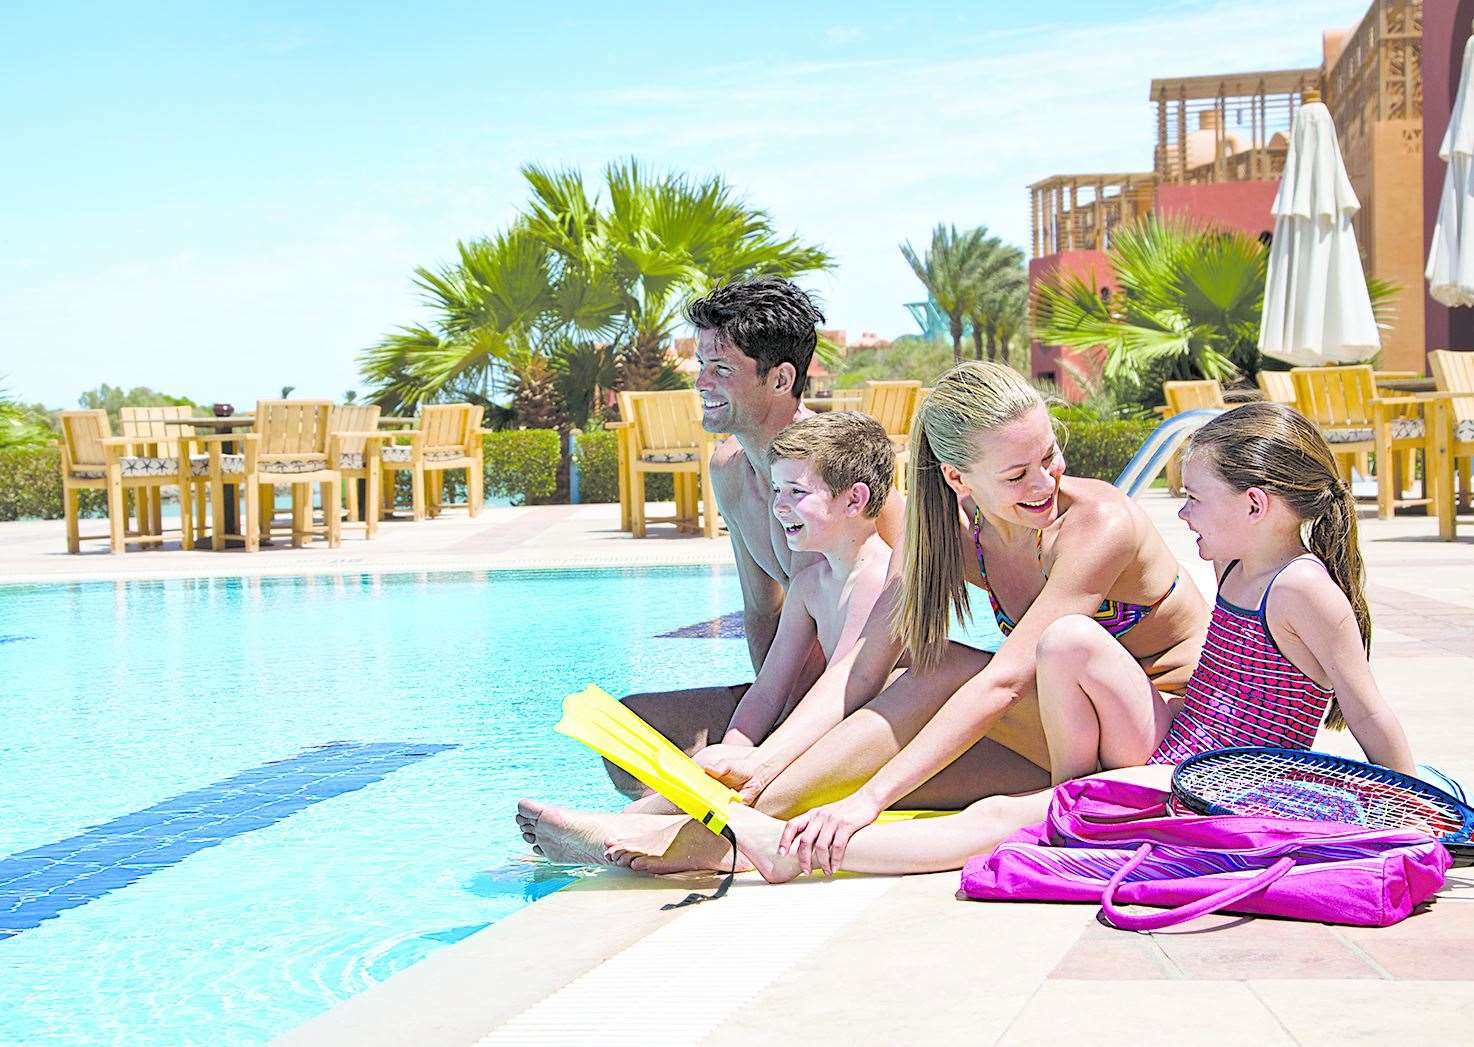 James Villa Holidays is now part of the rebranded Awaze group